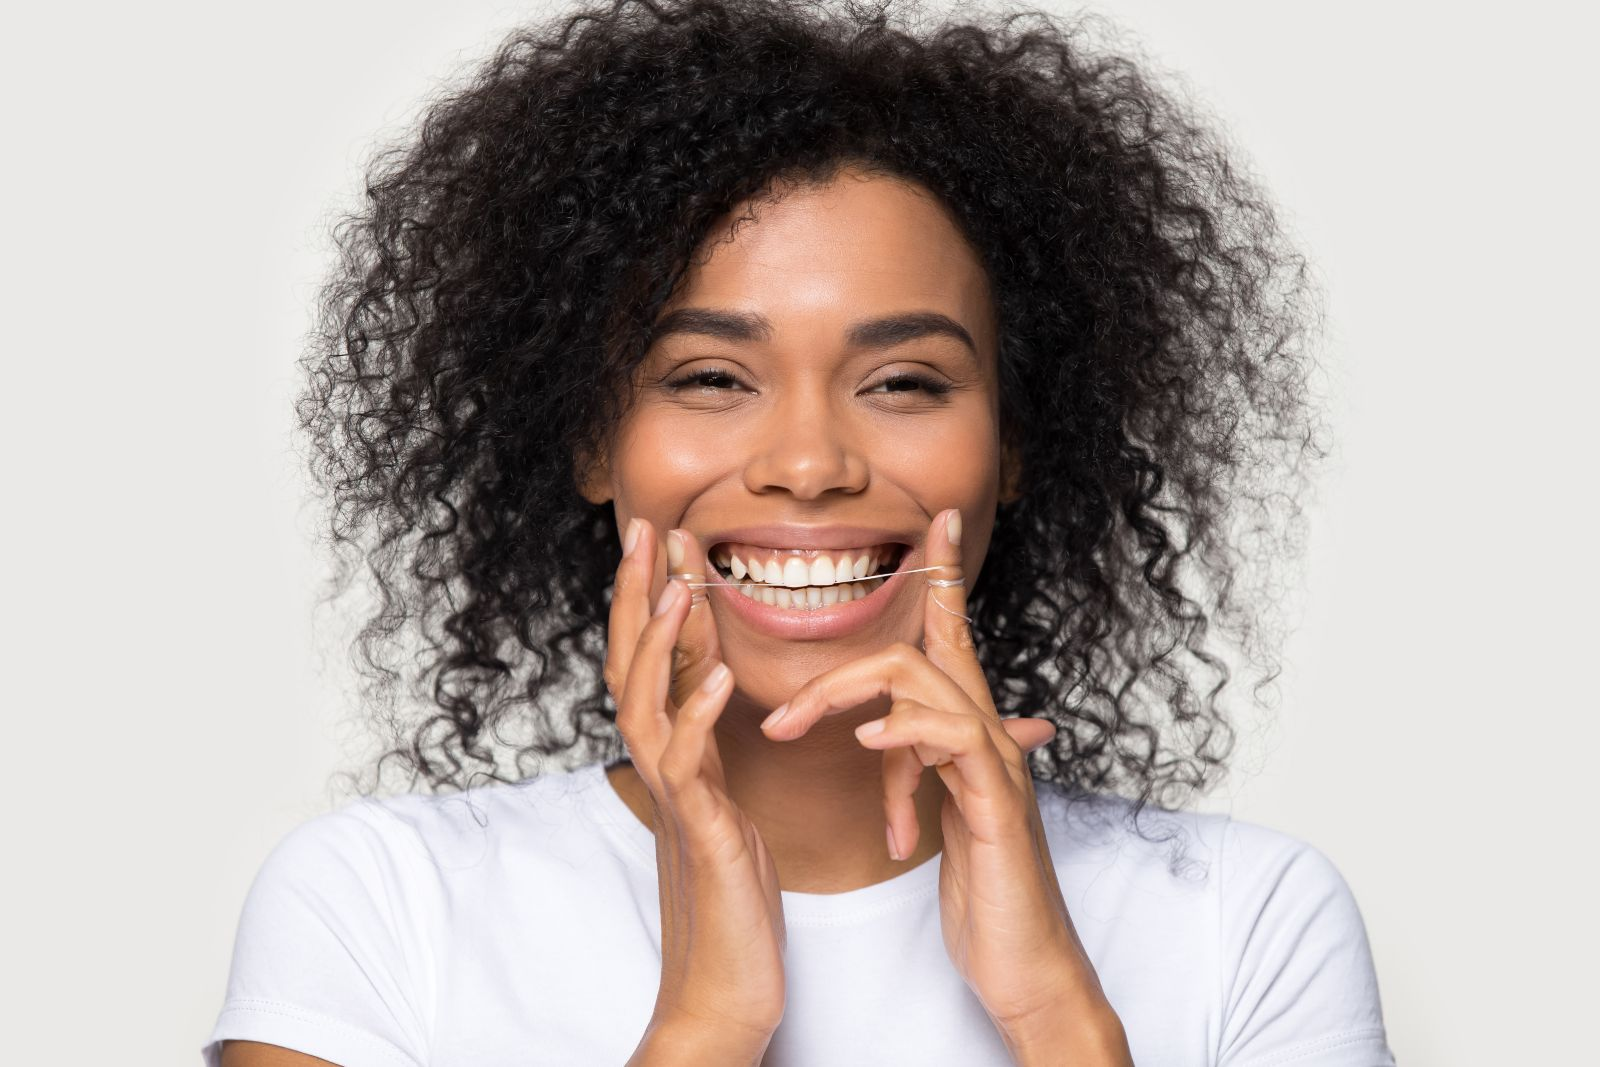 Closeup portrait happy african woman cleaning teeth with dental floss